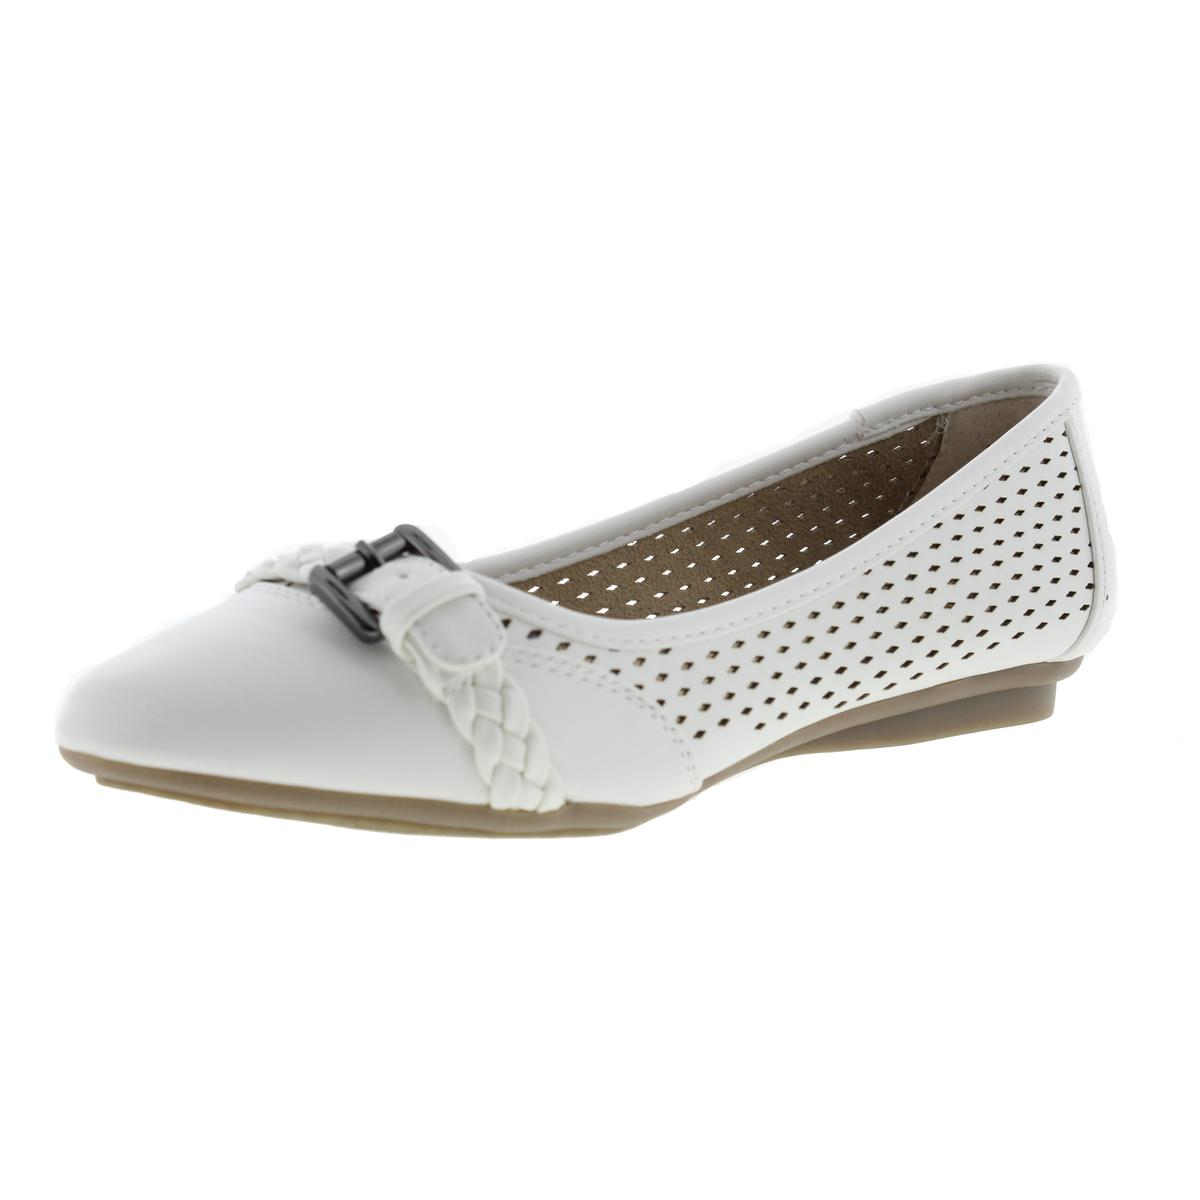 cliffs by white mountain 4174 womens jelly faux leather